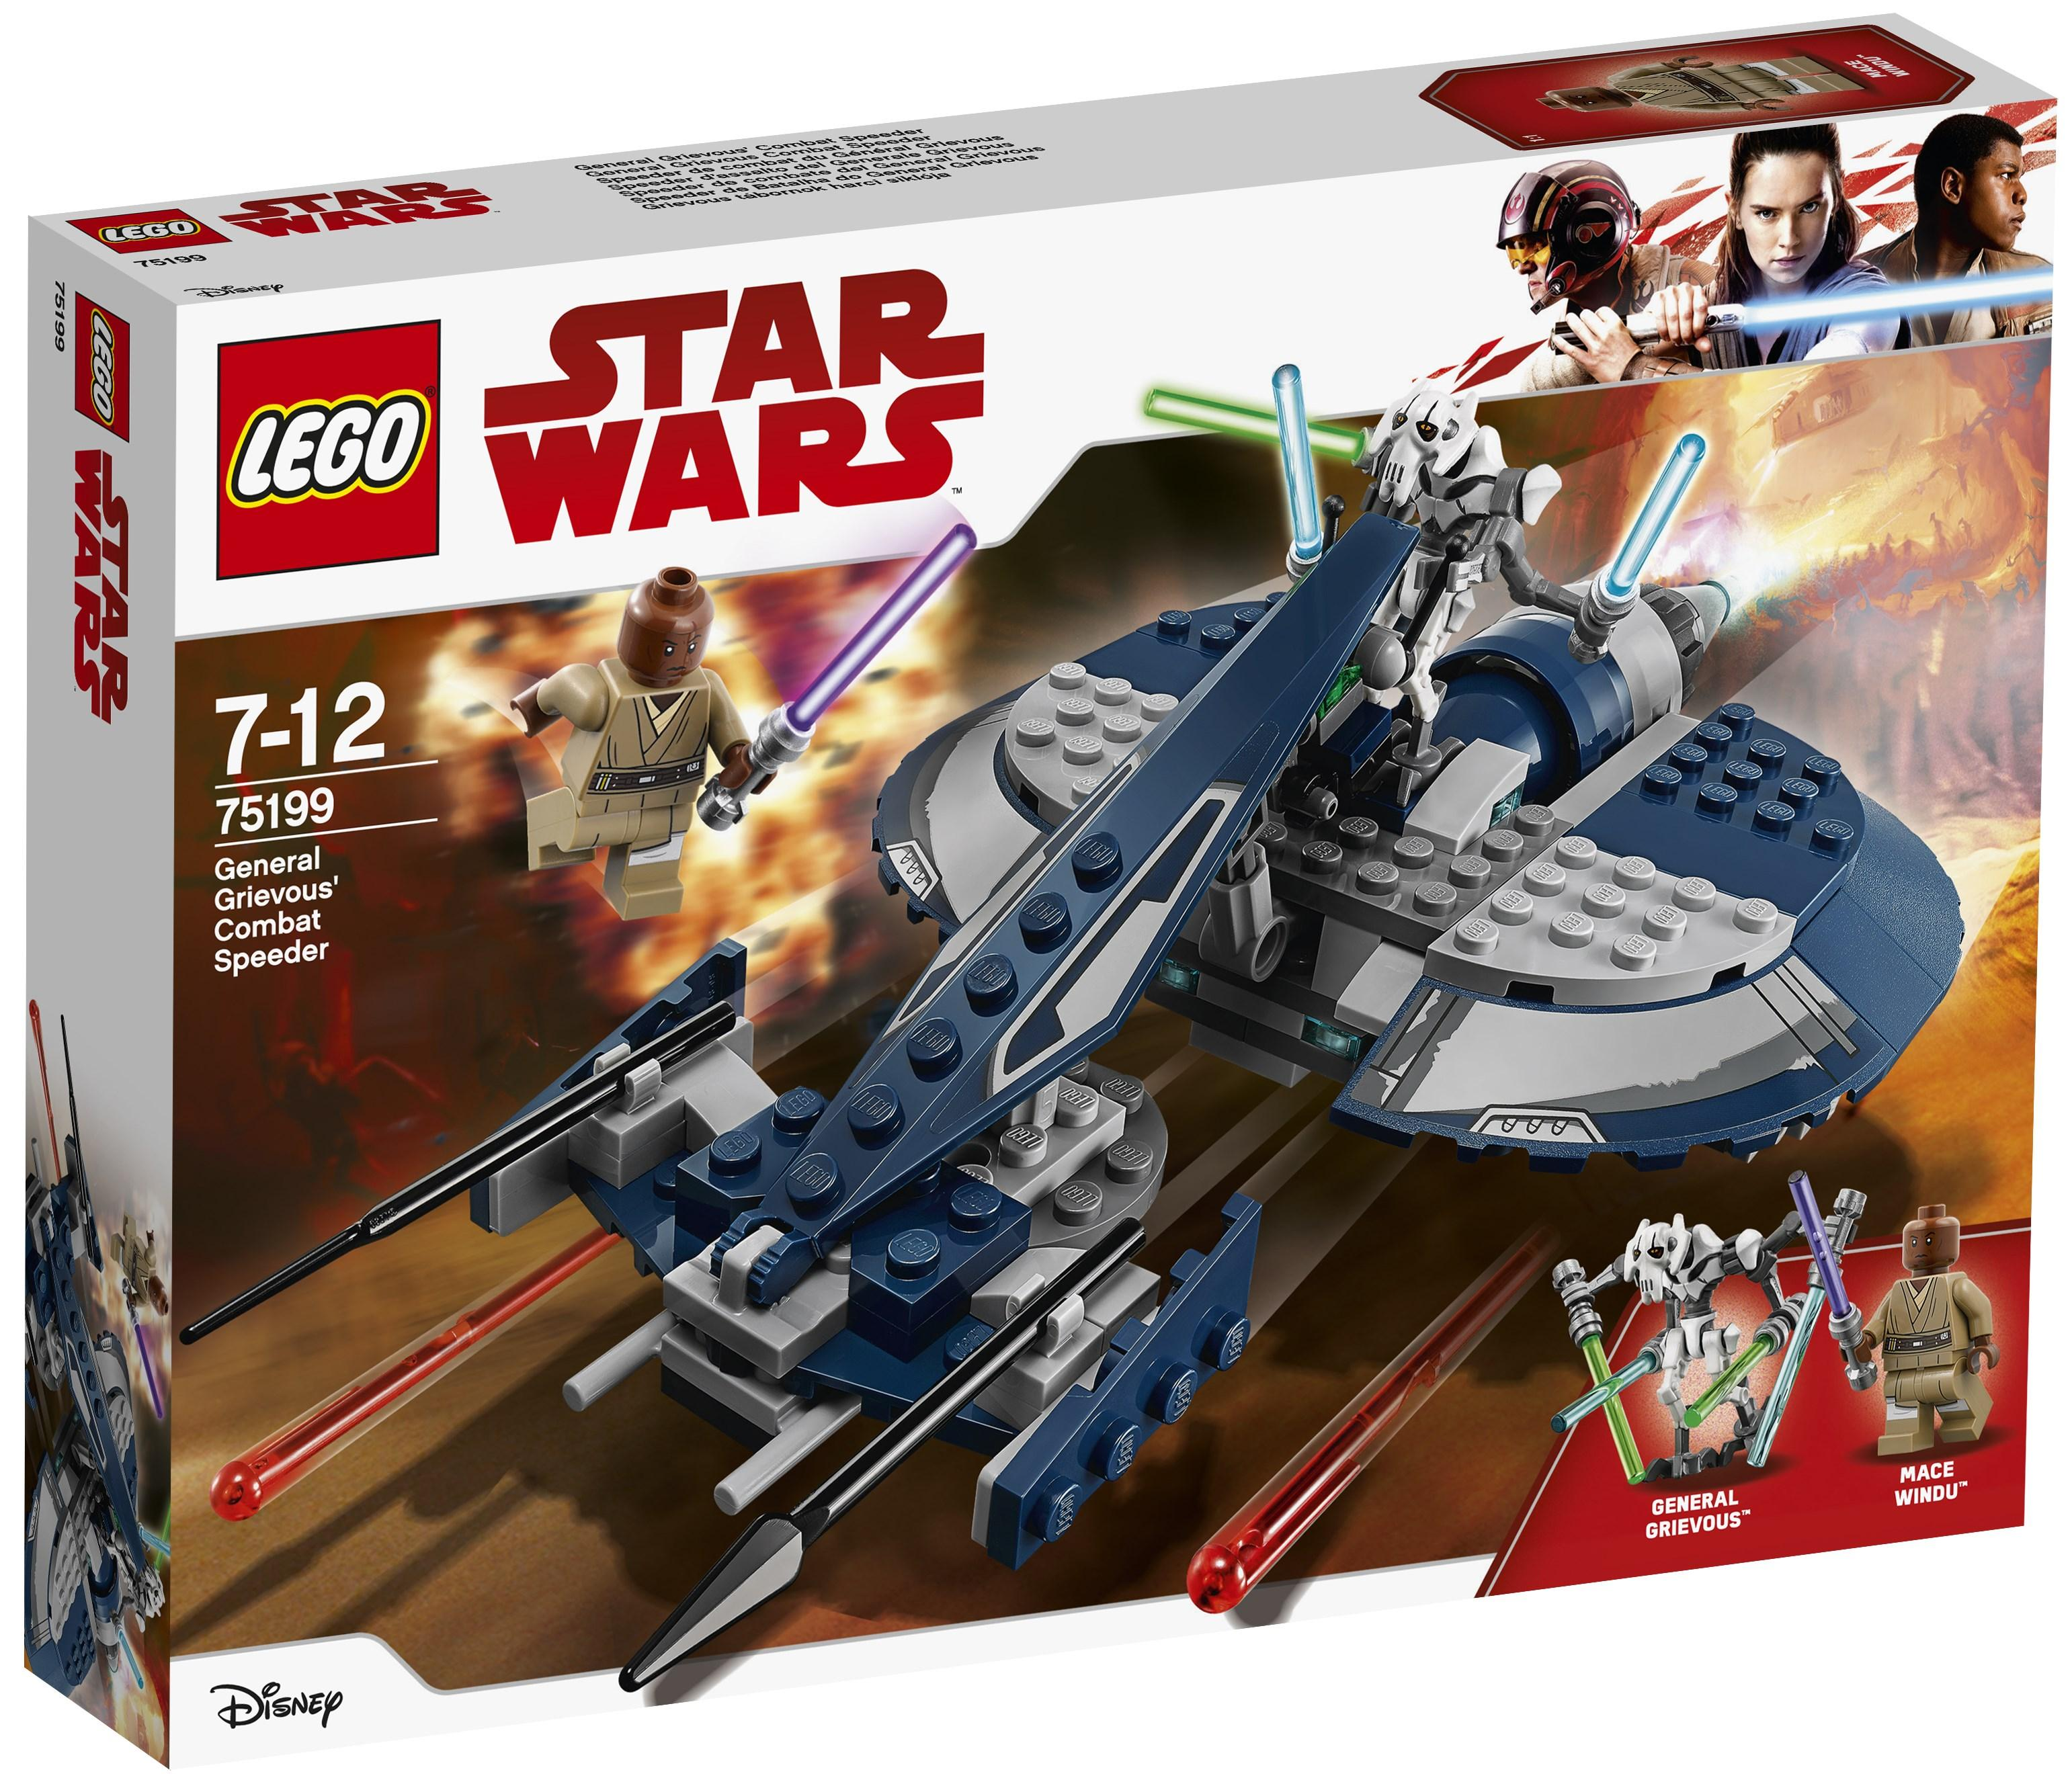 Lego Star Wars General Grievous' Combat Speeder (75199)